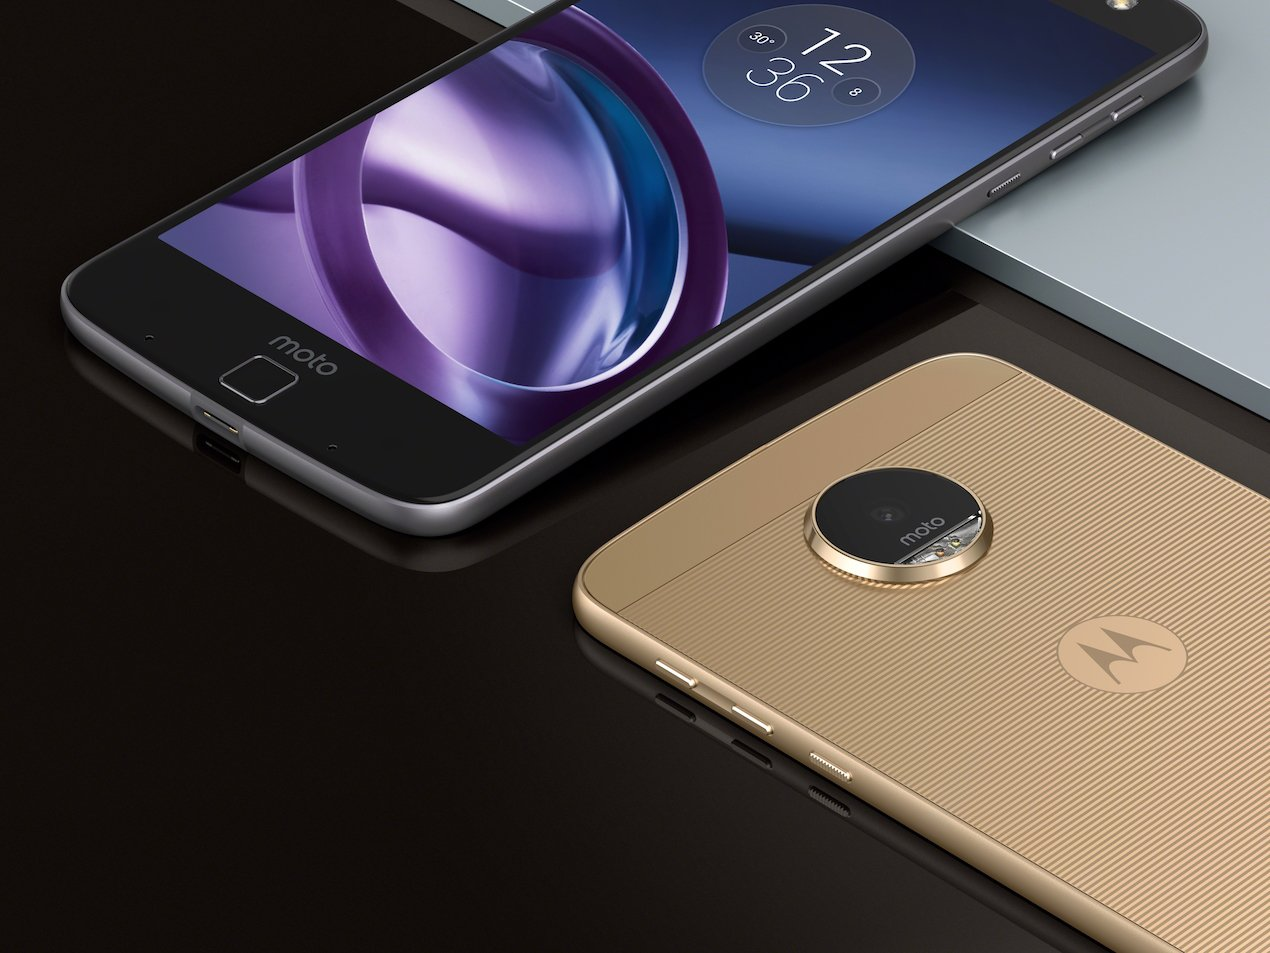 Lenovo Moto Z è ufficiale: design elegante e specifiche al top